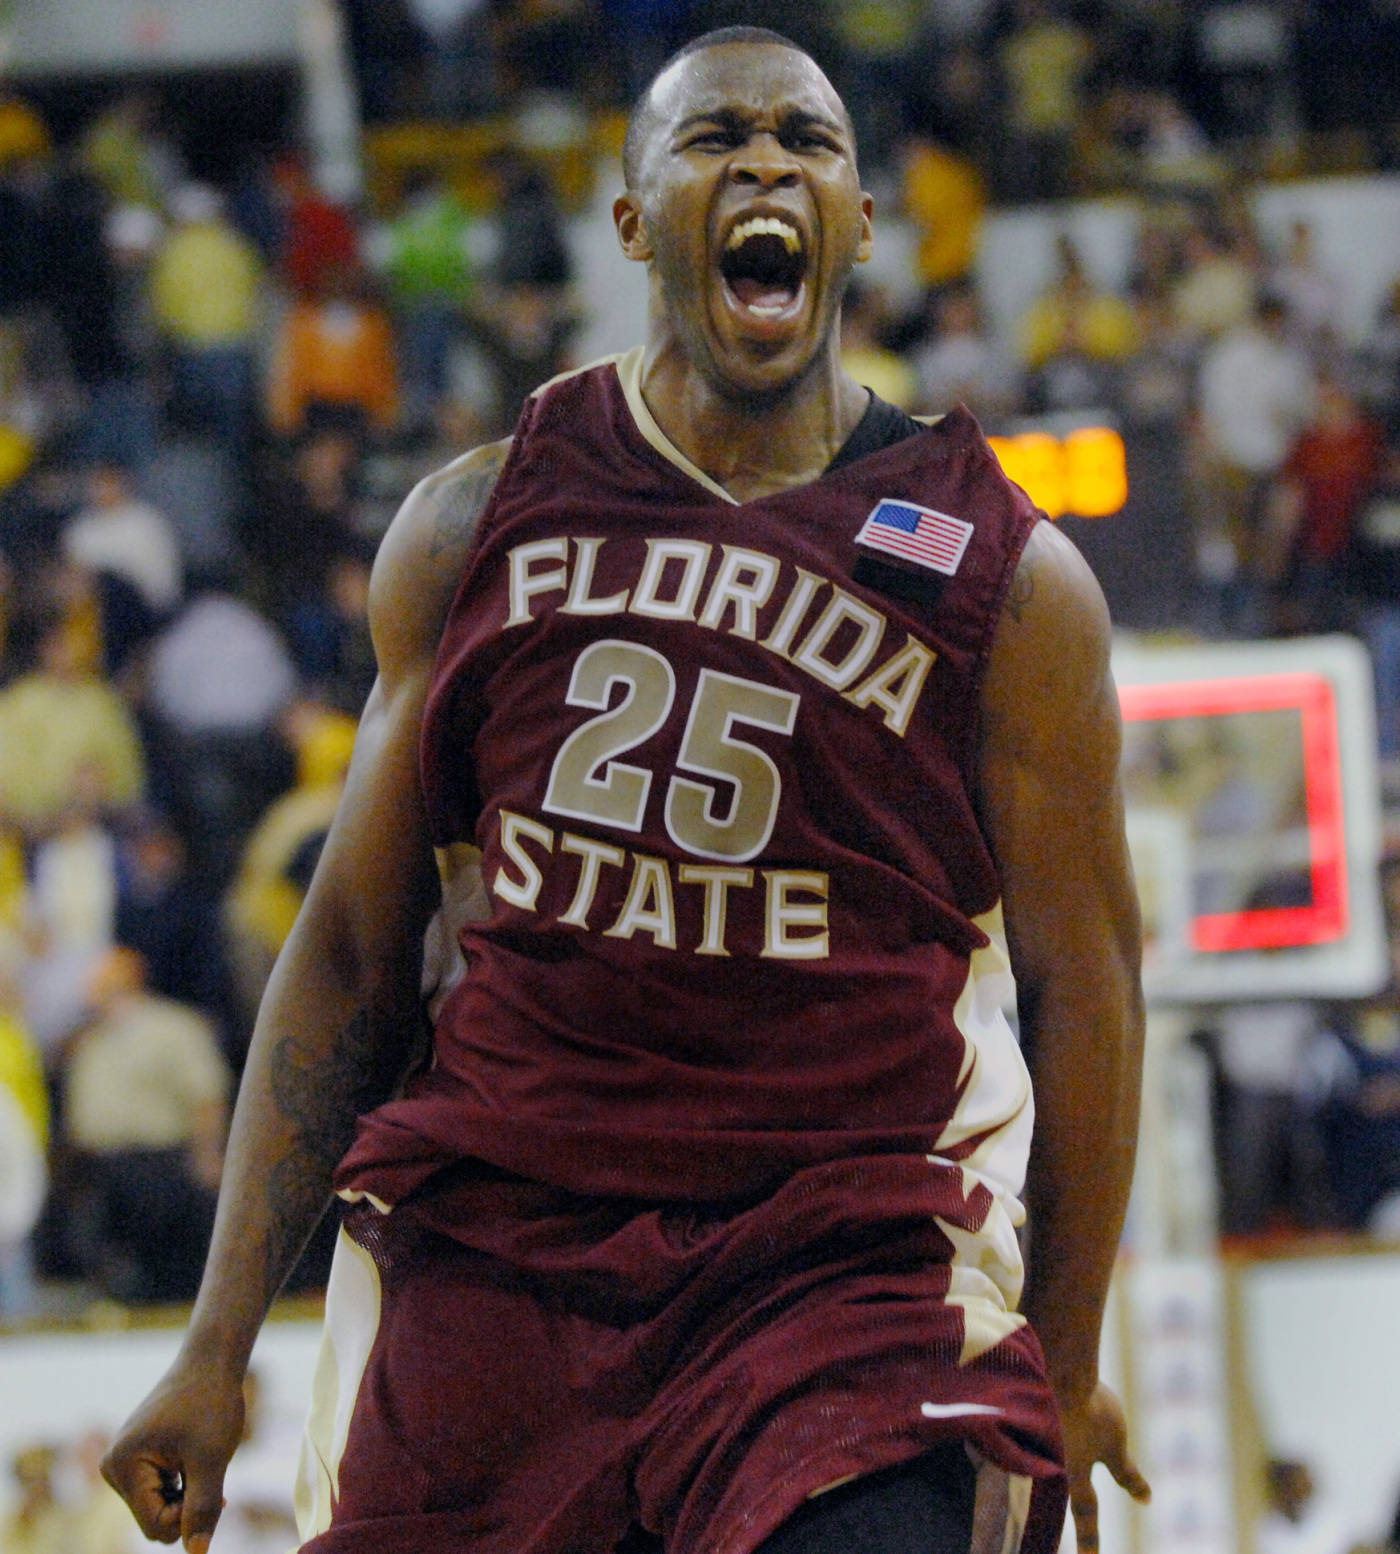 Florida State guard Jason Rich celebrates his team's 64-66 win against Georgia Tech at the end of the second half.